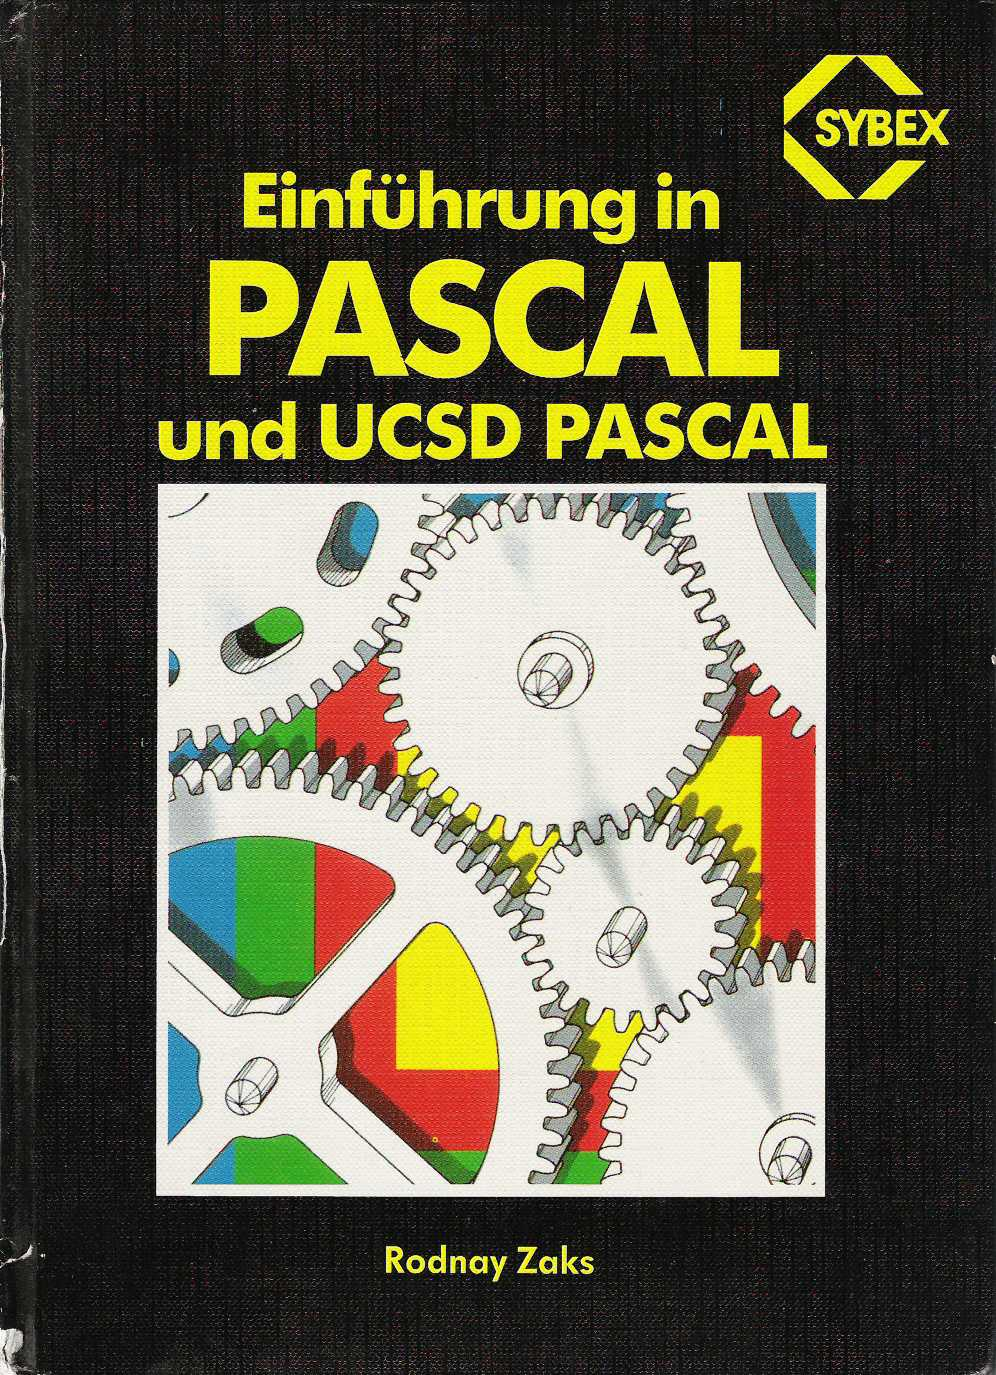 Introduction to PASCAL Including UCSD PASCAL screen